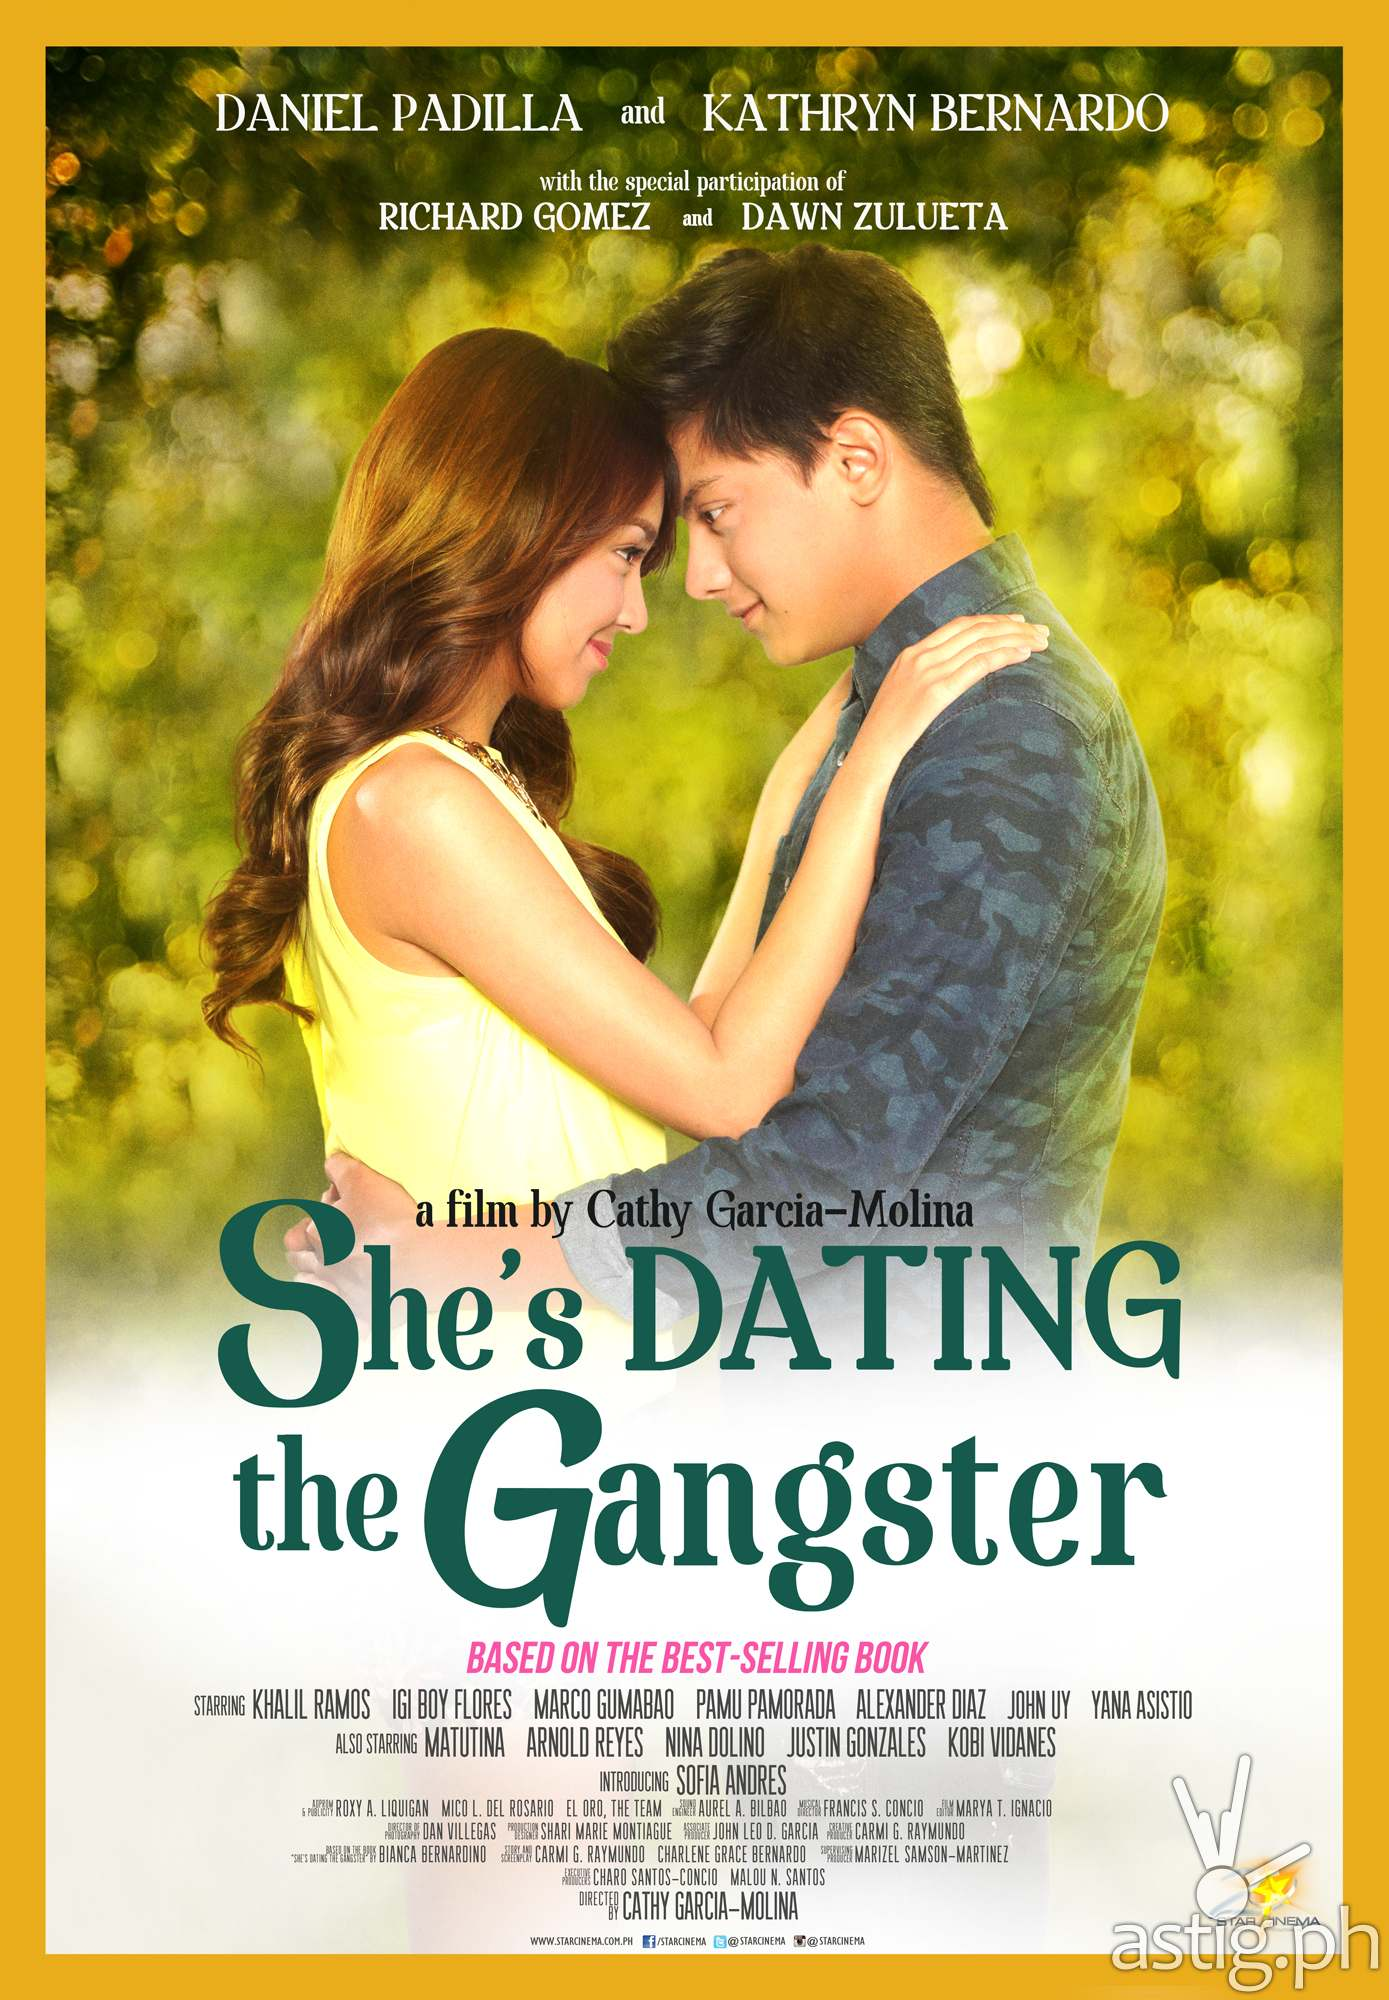 Shes dating the gangster pics memes